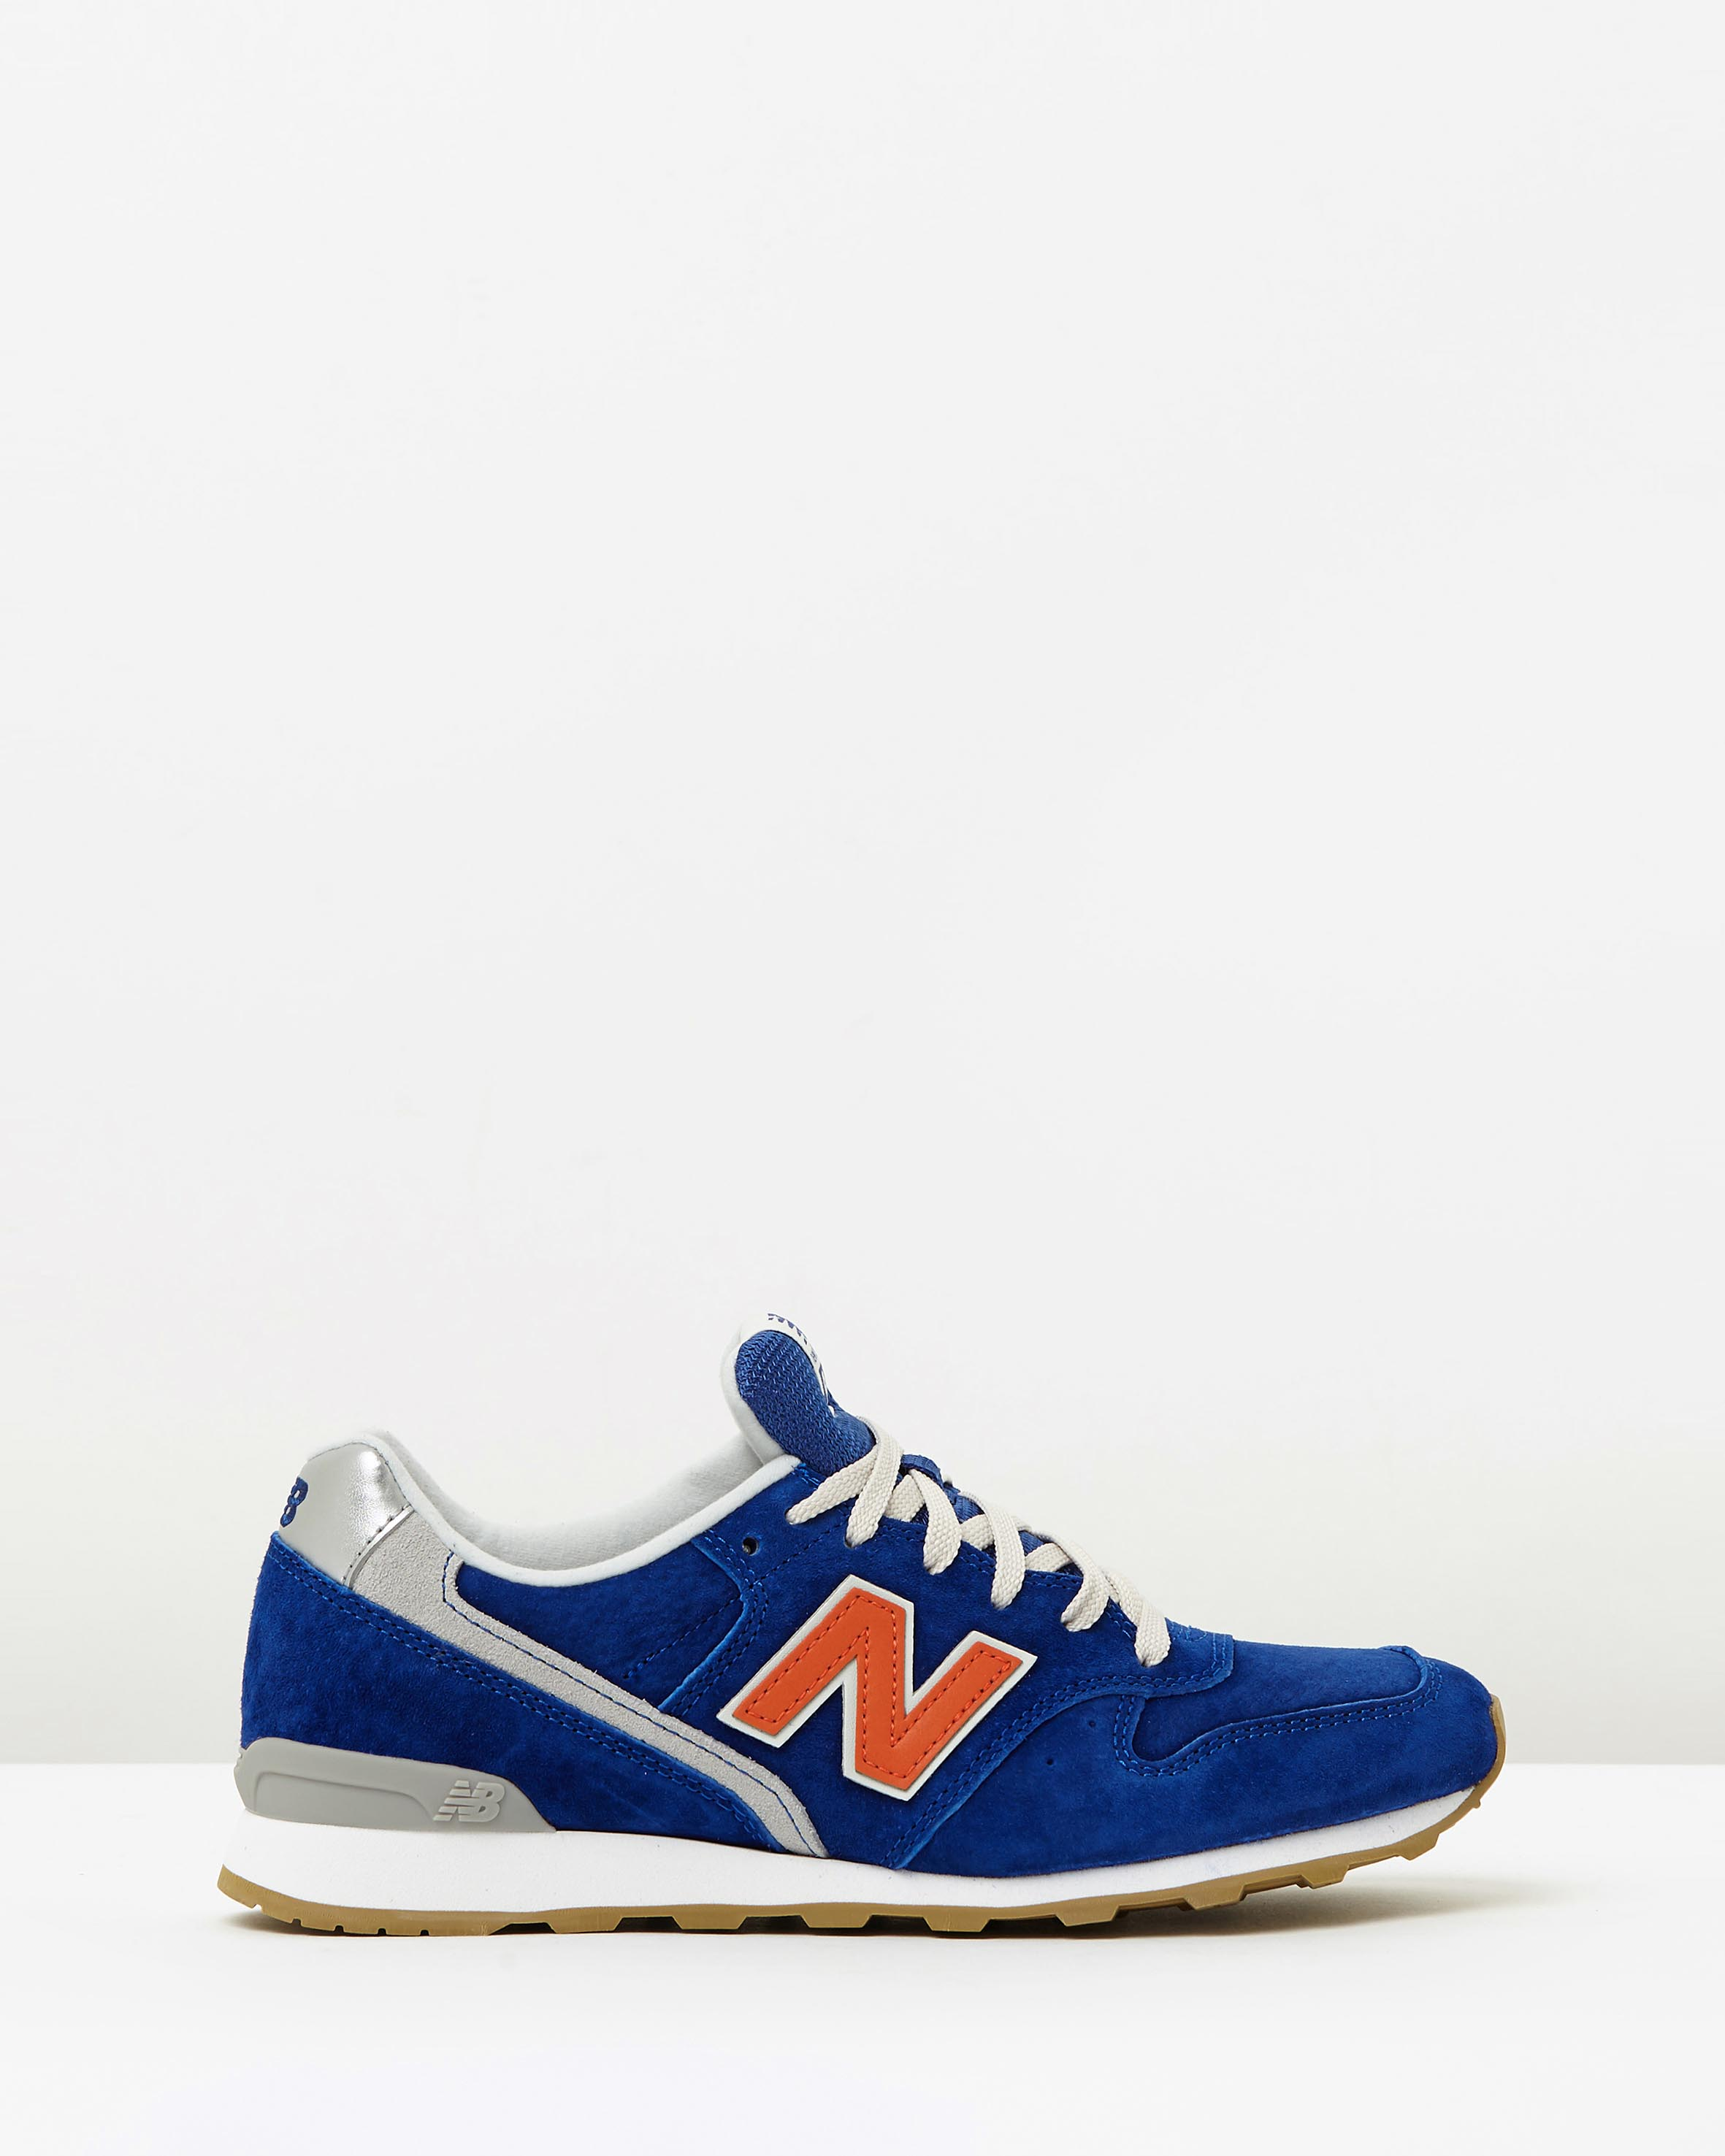 New Balance 996 Redwood Collection